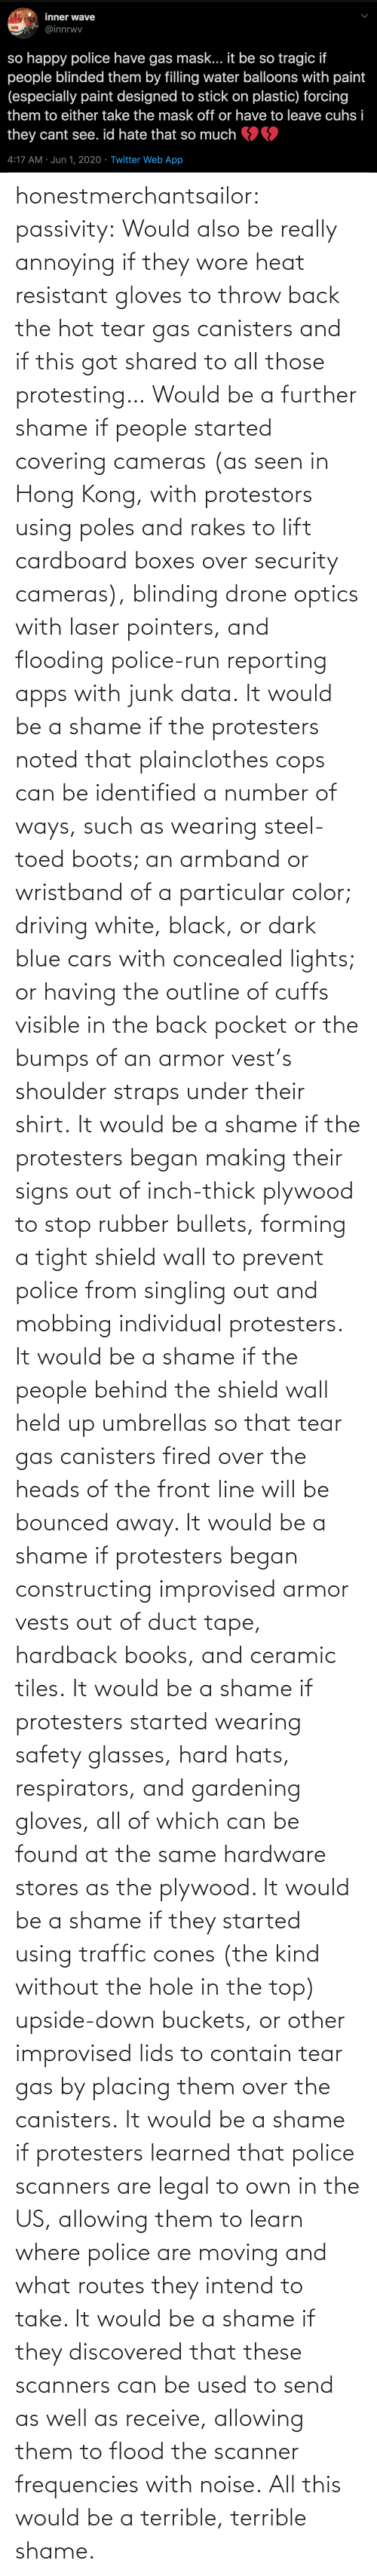 Hong Kong: honestmerchantsailor:  passivity: Would also be really annoying if they wore heat resistant gloves to throw back the hot tear gas canisters and if this got shared to all those protesting… Would be a further shame if people started covering cameras (as seen in Hong Kong, with protestors using poles and rakes to lift cardboard boxes over security cameras), blinding drone optics with laser pointers, and flooding police-run reporting apps with junk data. It would be a shame if the protesters noted that plainclothes cops can be identified a number of ways, such as wearing steel-toed boots; an armband or wristband of a particular color; driving white, black, or dark blue cars with concealed lights; or having the outline of cuffs visible in the back pocket or the bumps of an armor vest's shoulder straps under their shirt. It would be a shame if the protesters began making their signs out of inch-thick plywood to stop rubber bullets, forming a tight shield wall to prevent police from singling out and mobbing individual protesters. It would be a shame if the people behind the shield wall held up umbrellas so that tear gas canisters fired over the heads of the front line will be bounced away. It would be a shame if protesters began constructing improvised armor vests out of duct tape, hardback books, and ceramic tiles. It would be a shame if protesters started wearing safety glasses, hard hats, respirators, and gardening gloves, all of which can be found at the same hardware stores as the plywood. It would be a shame if they started using traffic cones (the kind without the hole in the top) upside-down buckets, or other improvised lids to contain tear gas by placing them over the canisters. It would be a shame if protesters learned that police scanners are legal to own in the US, allowing them to learn where police are moving and what routes they intend to take. It would be a shame if they discovered that these scanners can be used to send as well as receive, allowing them to flood the scanner frequencies with noise. All this would be a terrible, terrible shame.